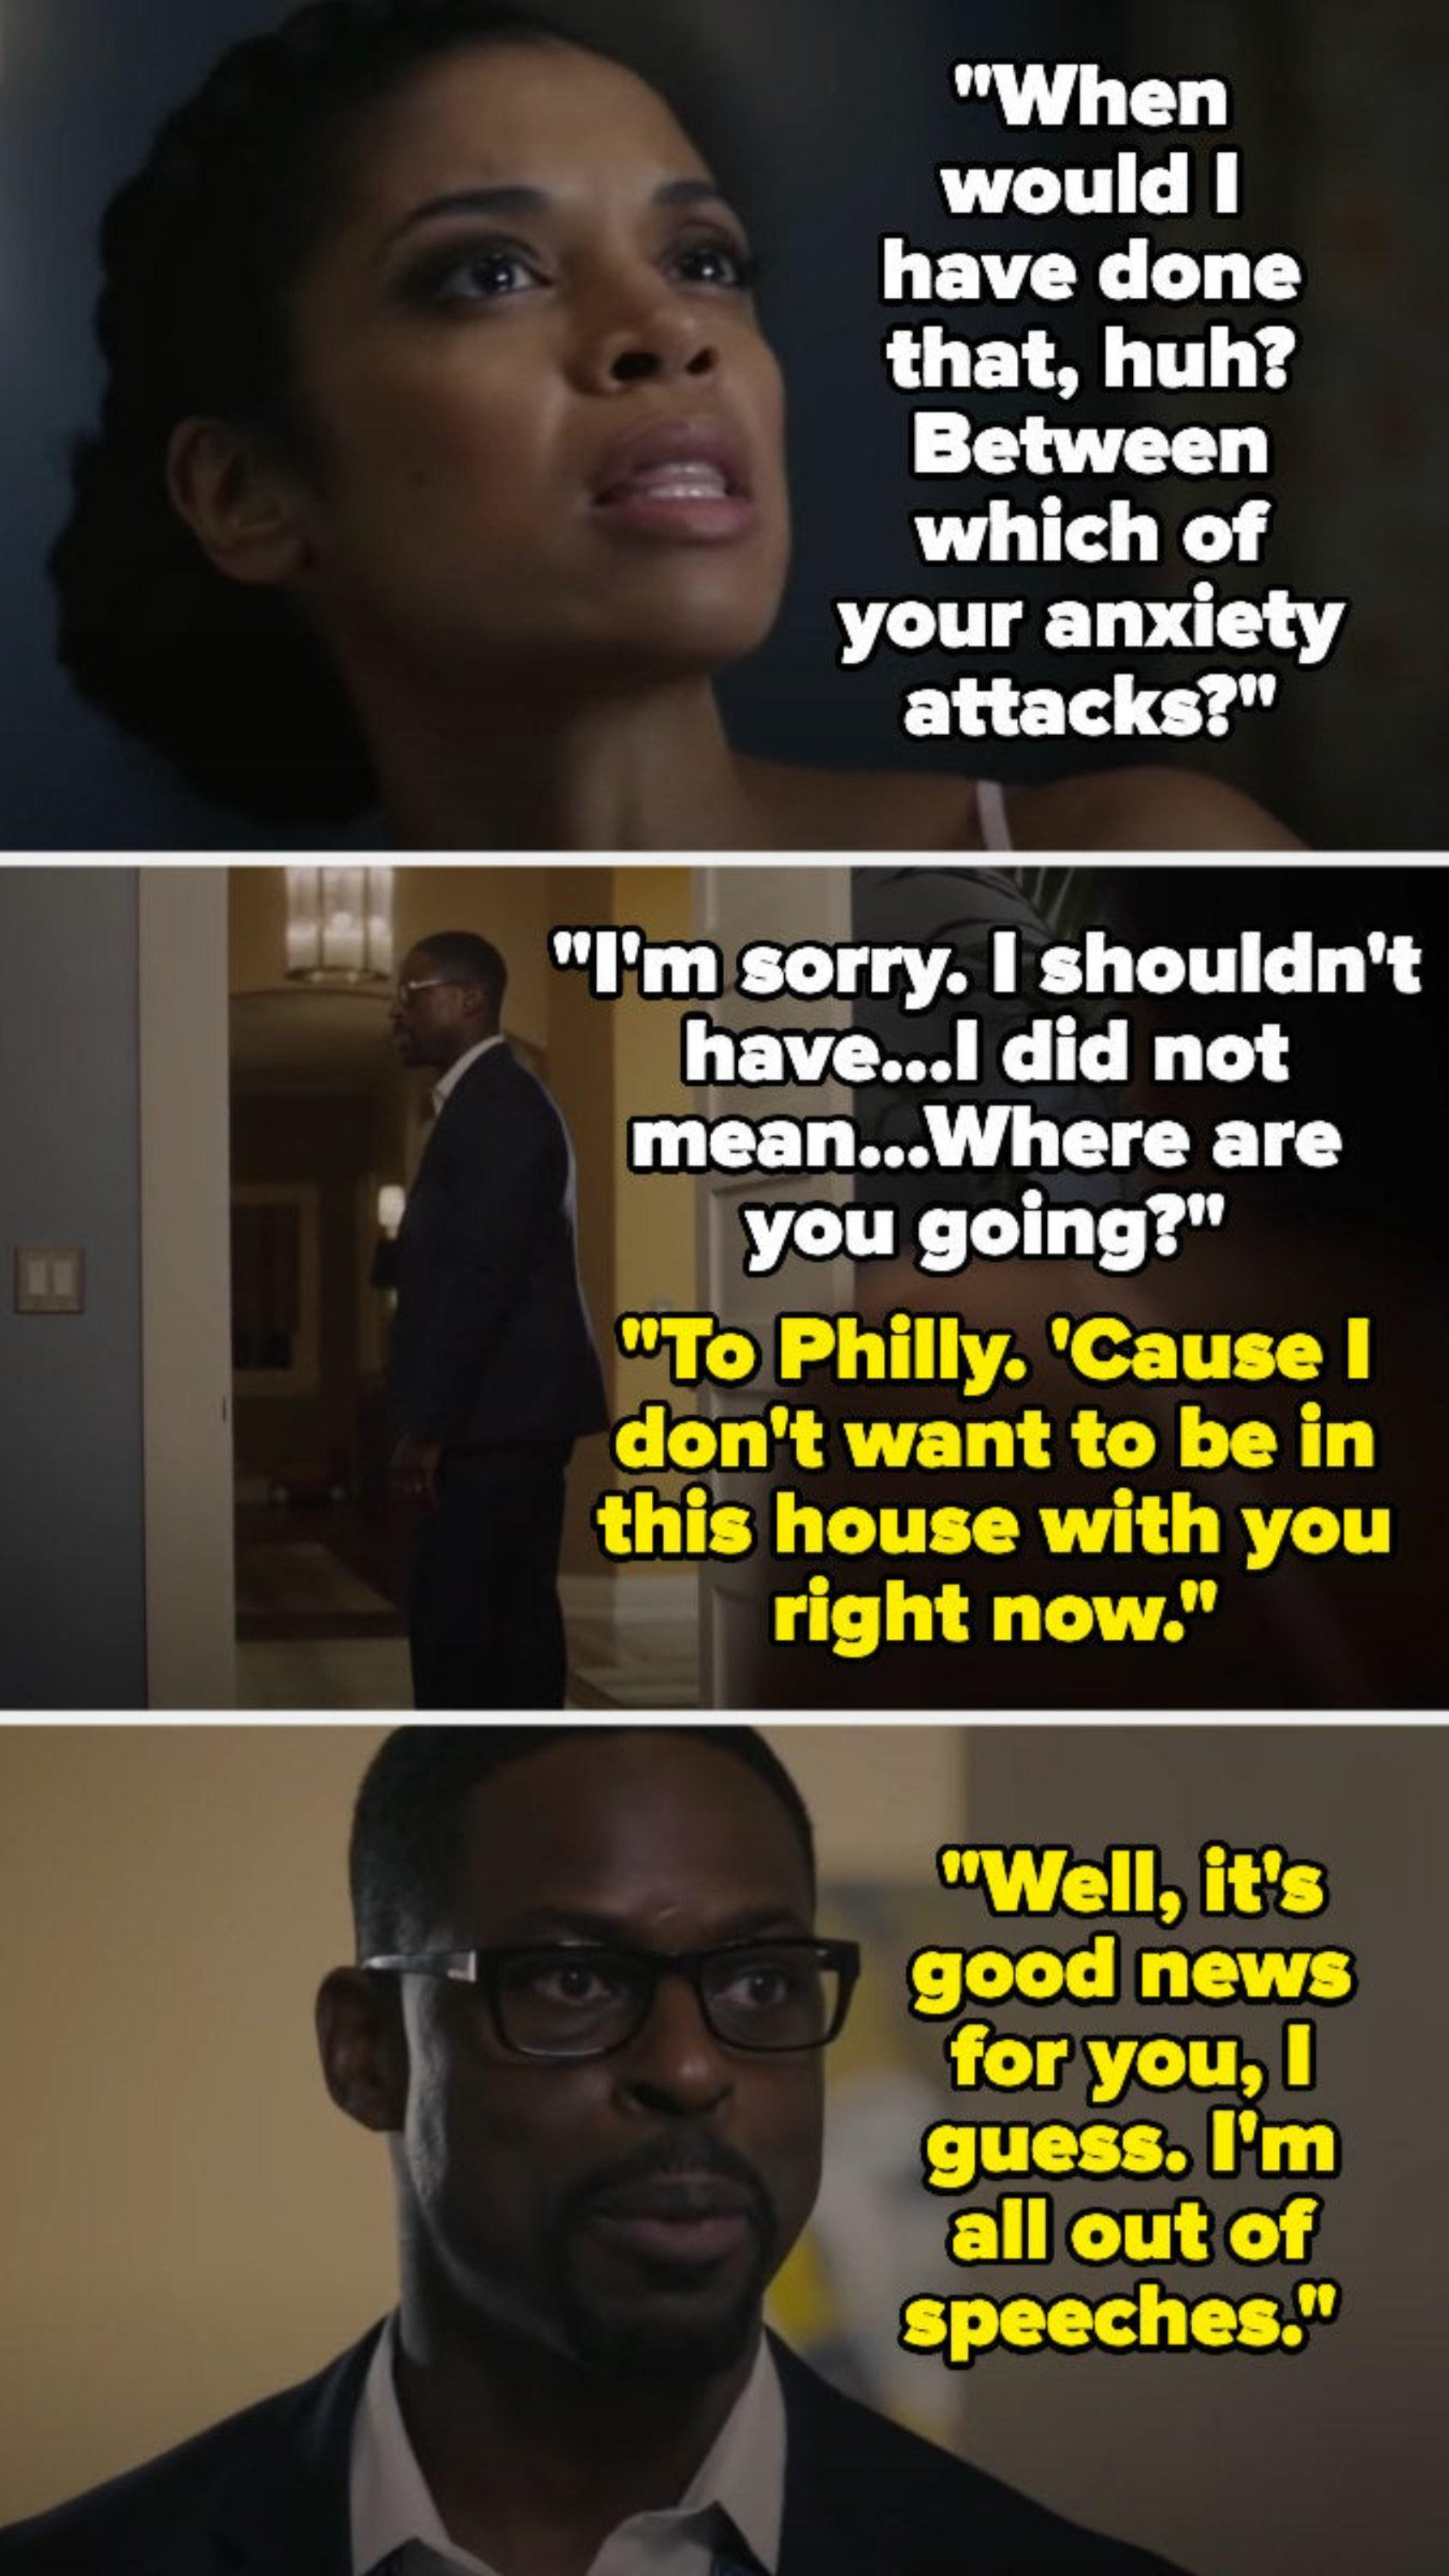 Beth asks when she would've done that, between which of his anxiety attacks, then apologizes – Randall says he's going to Philly since he doesn't want to be around her, and says he's out of speeches